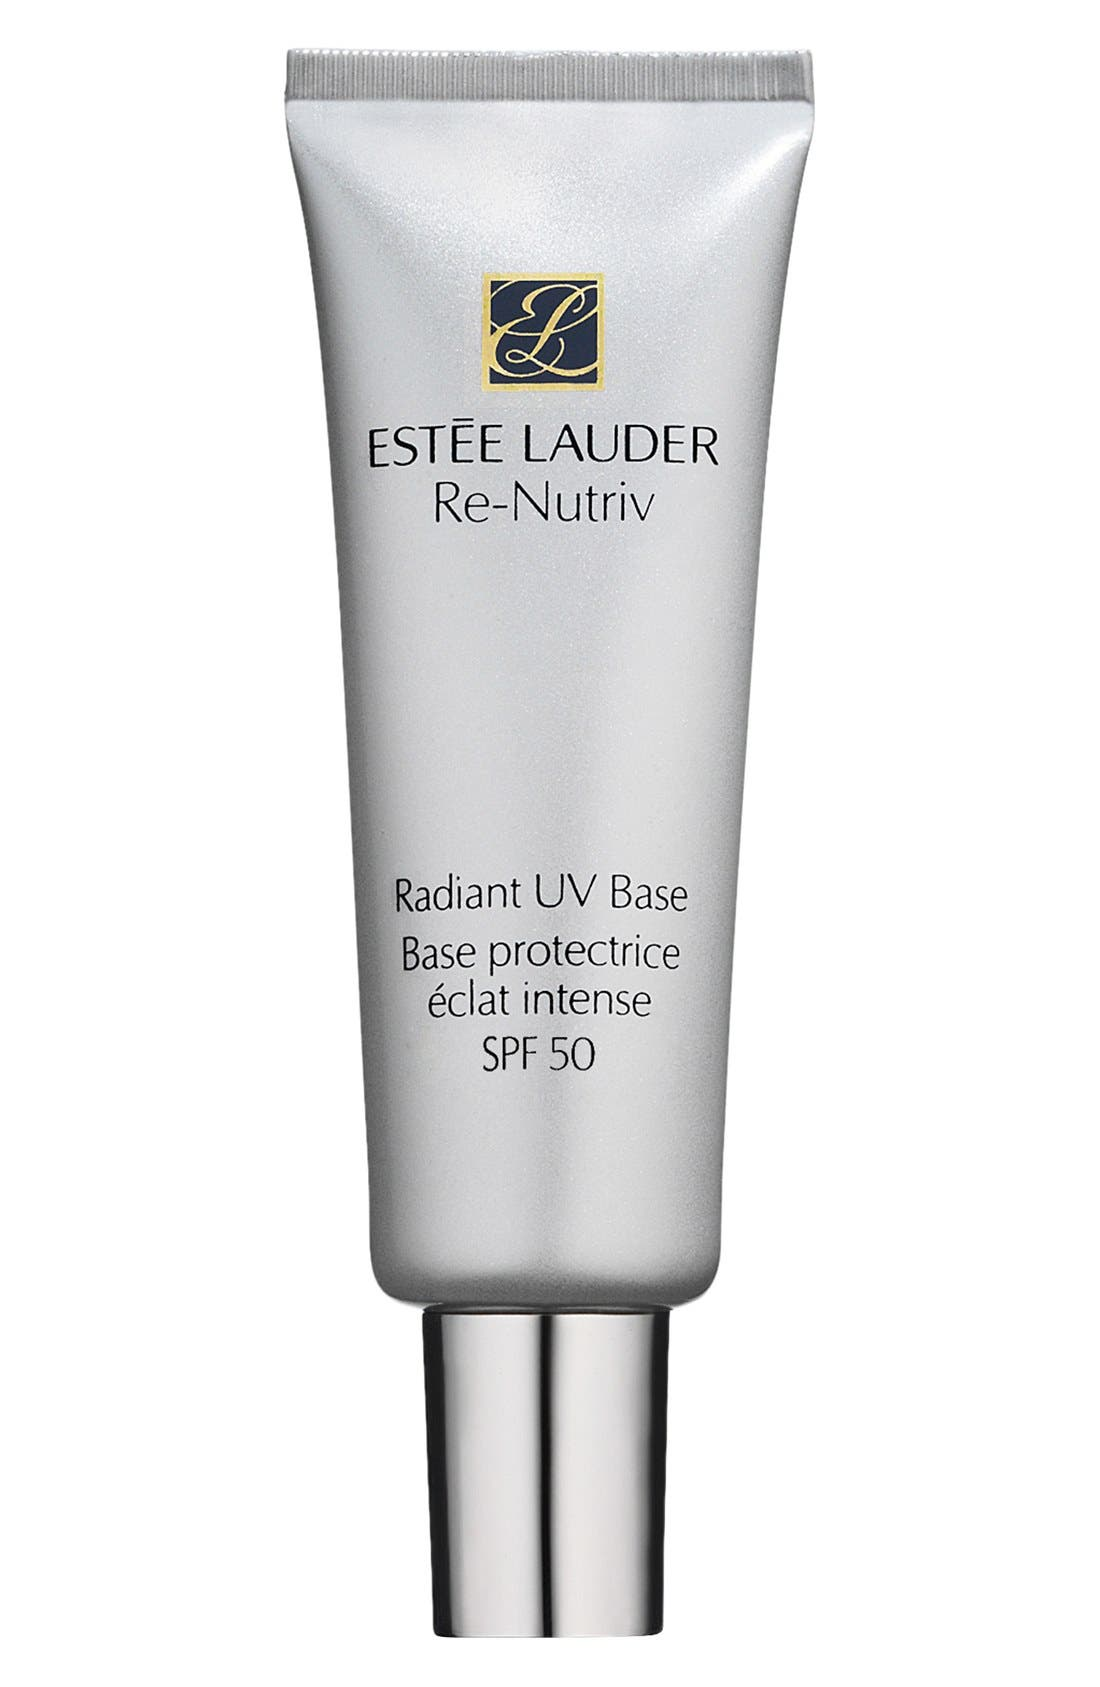 Estée Lauder Re-Nutriv Radiant UV Base SPF 50